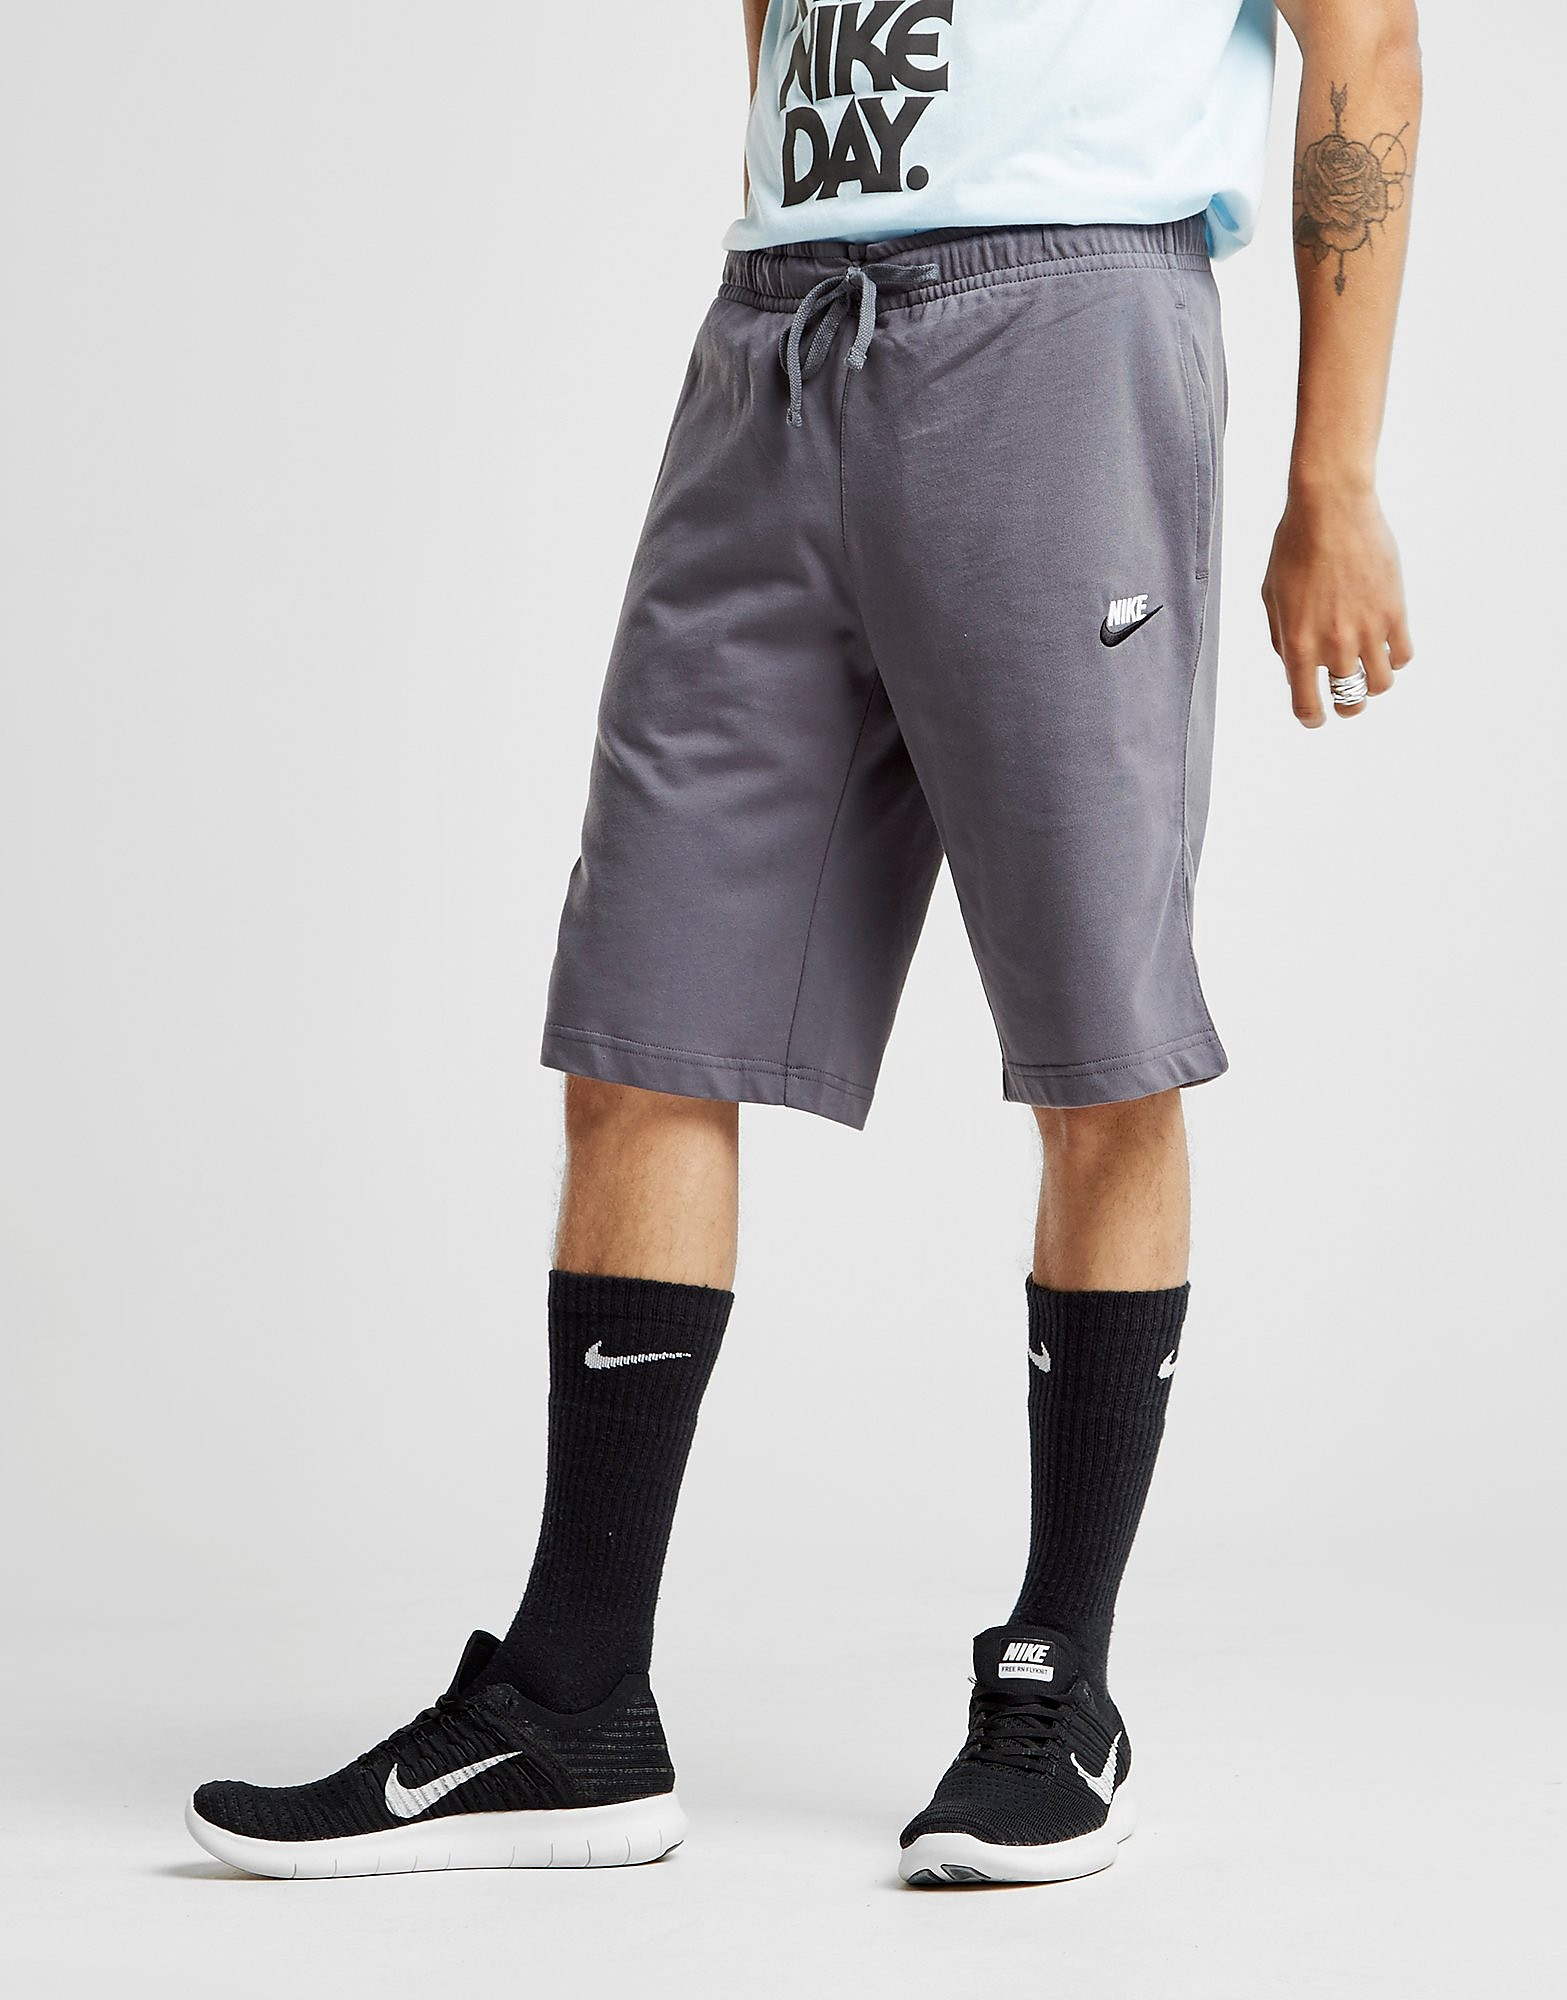 Nike Foundation 2 Shorts